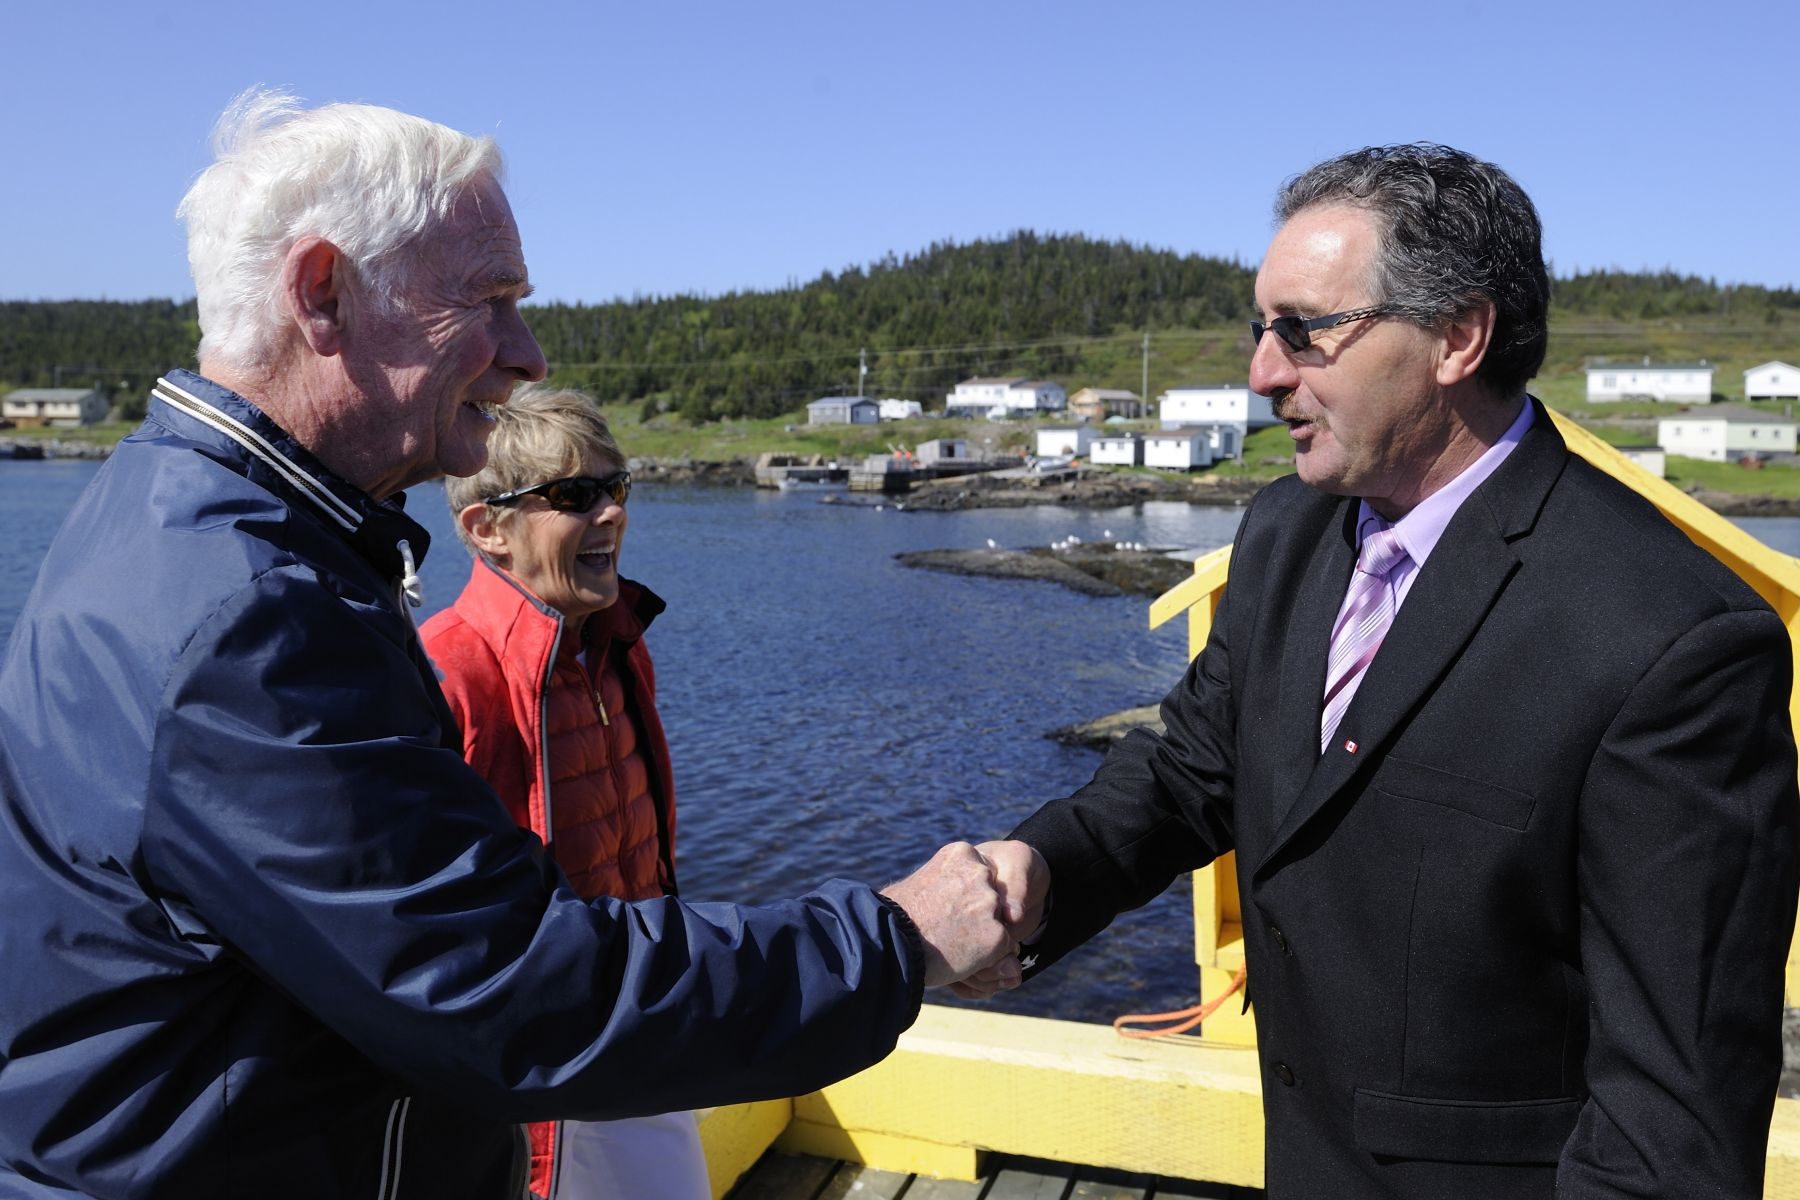 Their Excellencies were hosted by His Worship Gerard Foley, Mayor of the Town of Fogo Island.